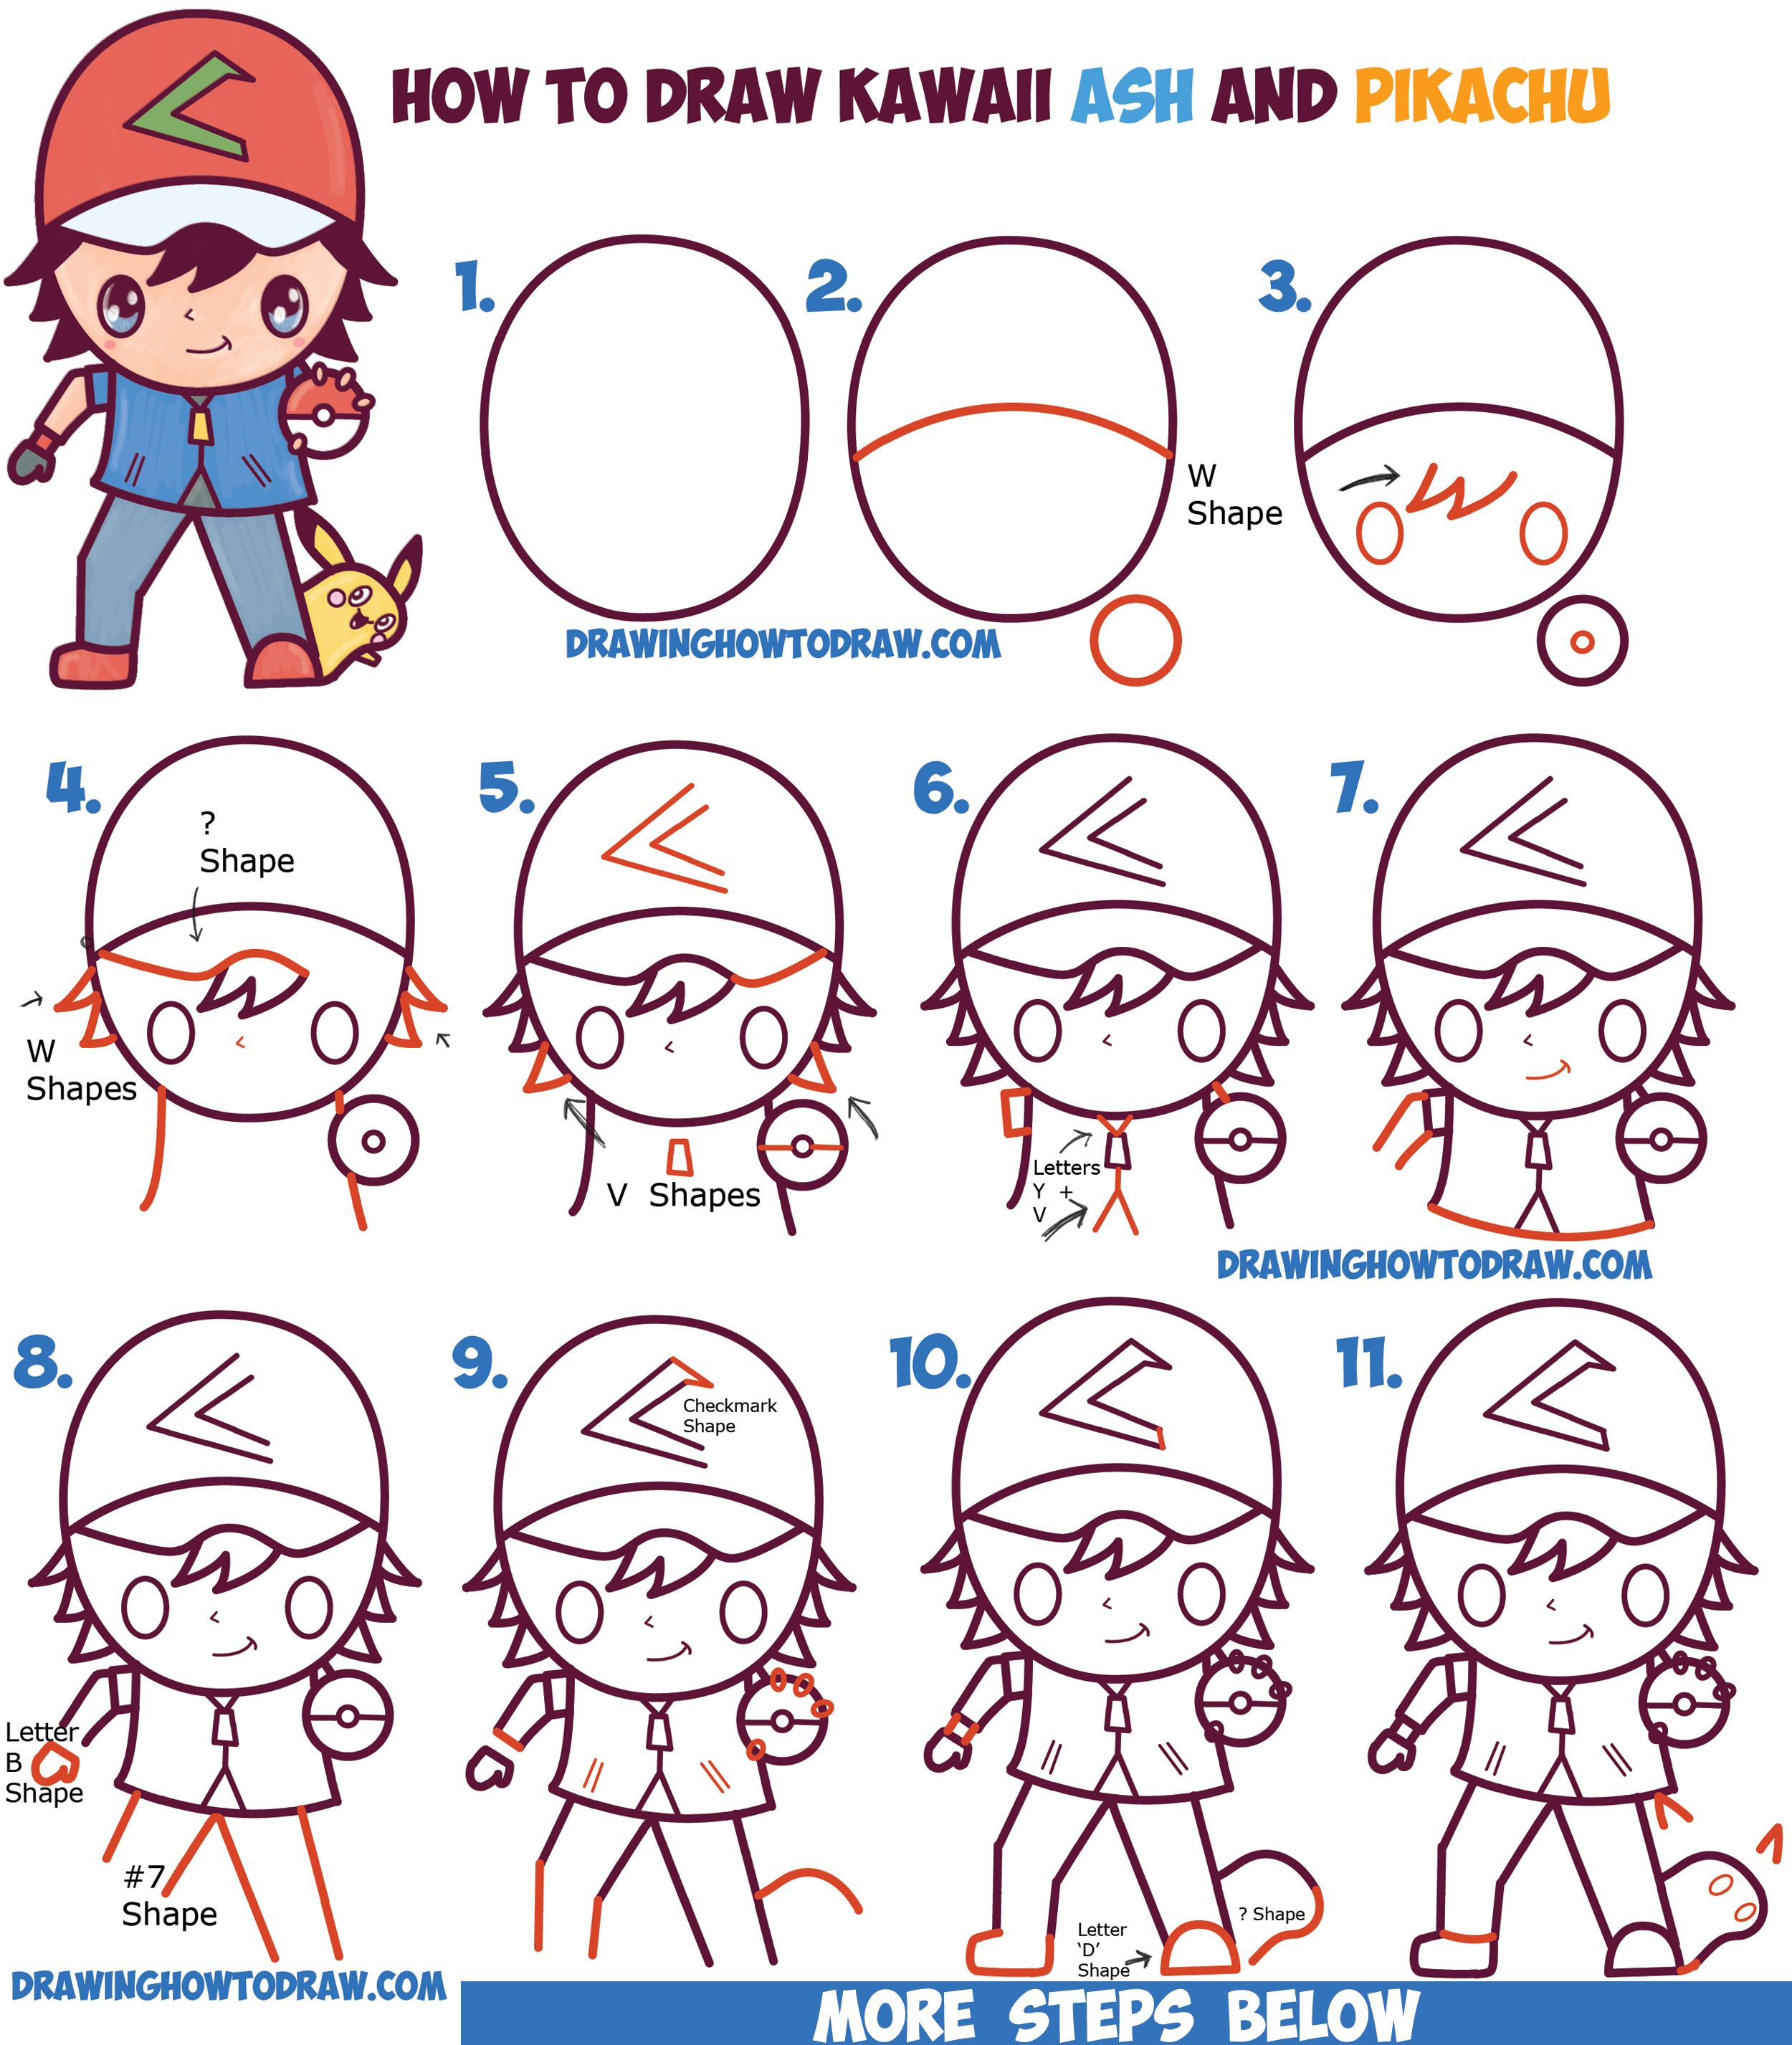 How to Draw Cute Kawaii Chibi Ash Ketchum and Pikachu from